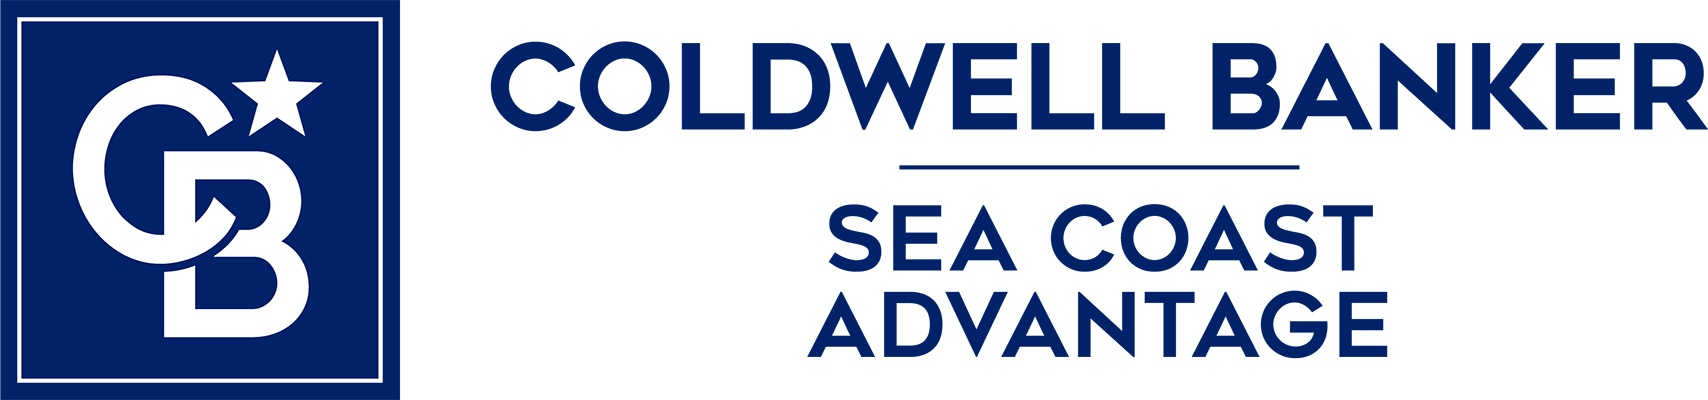 Brenden Donovan - Coldwell Banker Sea Coast Advantage Realty